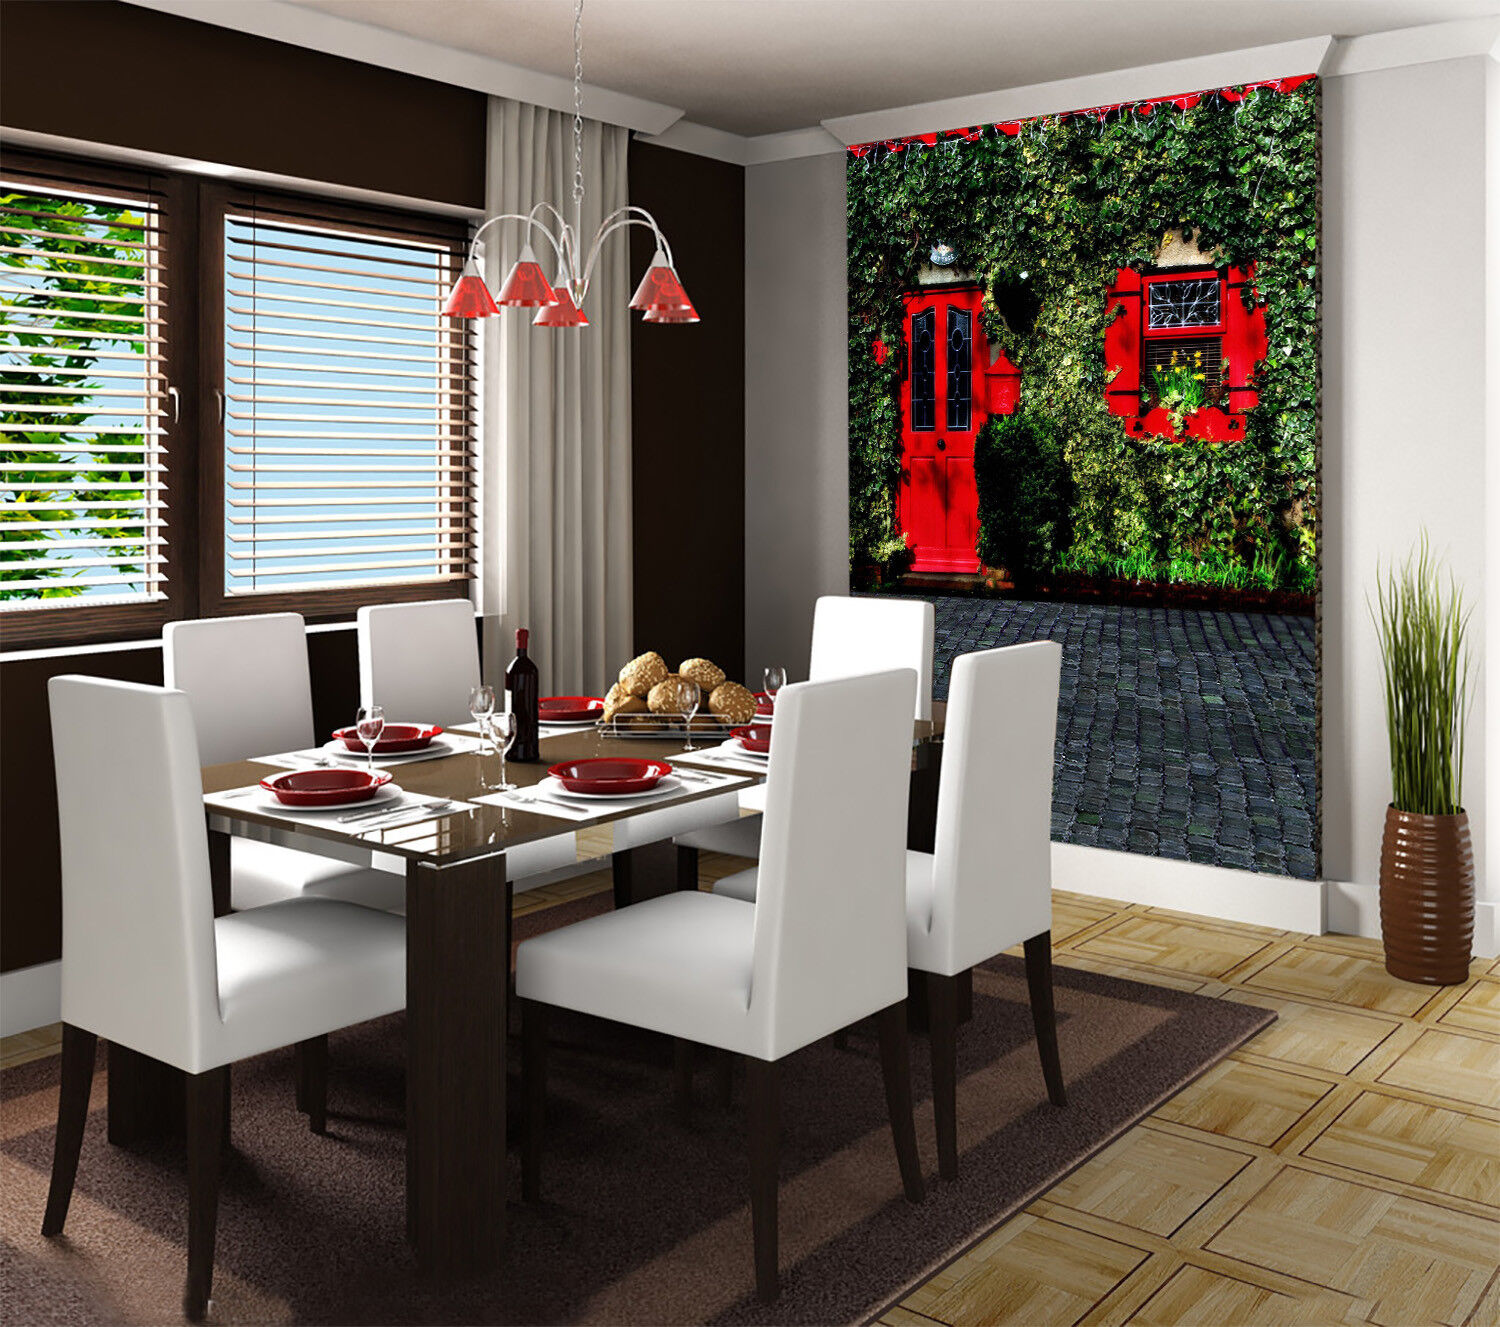 3D ROT House Vines 452 Wall Paper Wall Print Decal Wall Deco Indoor Mural Carly